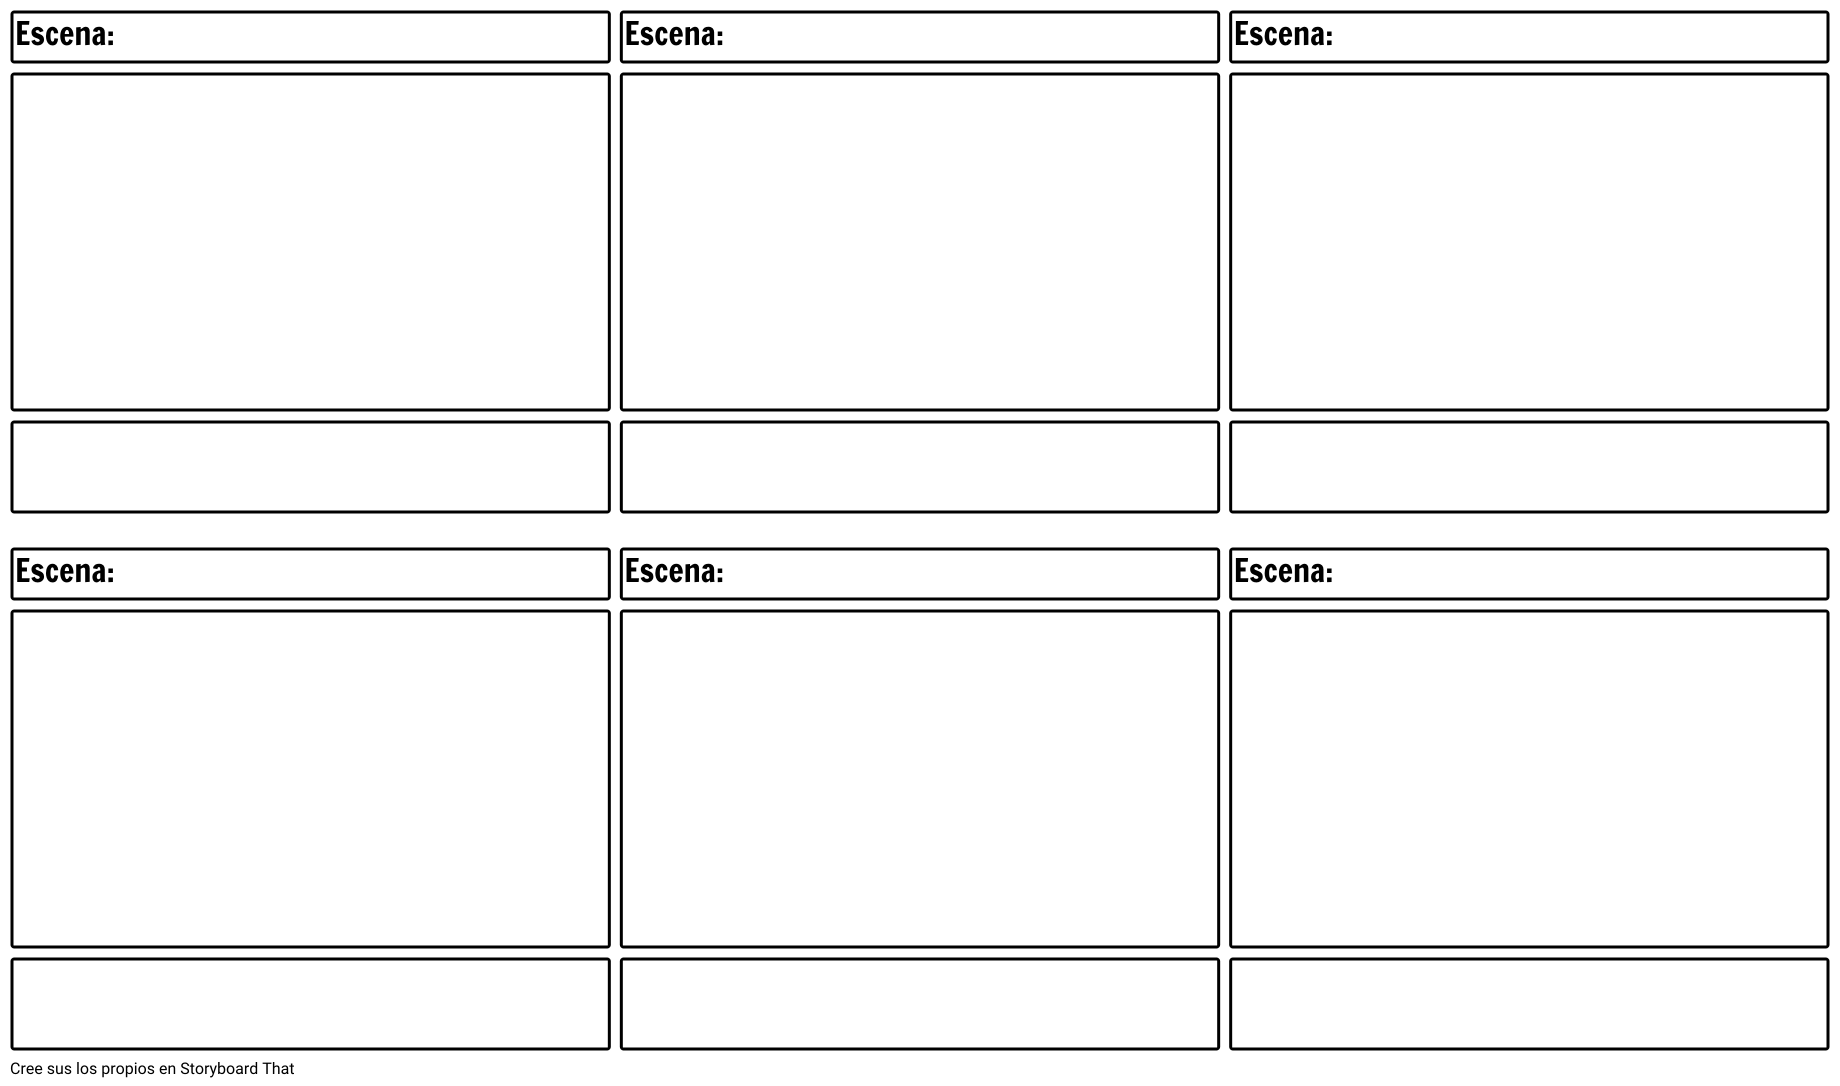 Layouts and measurements for common script formats.